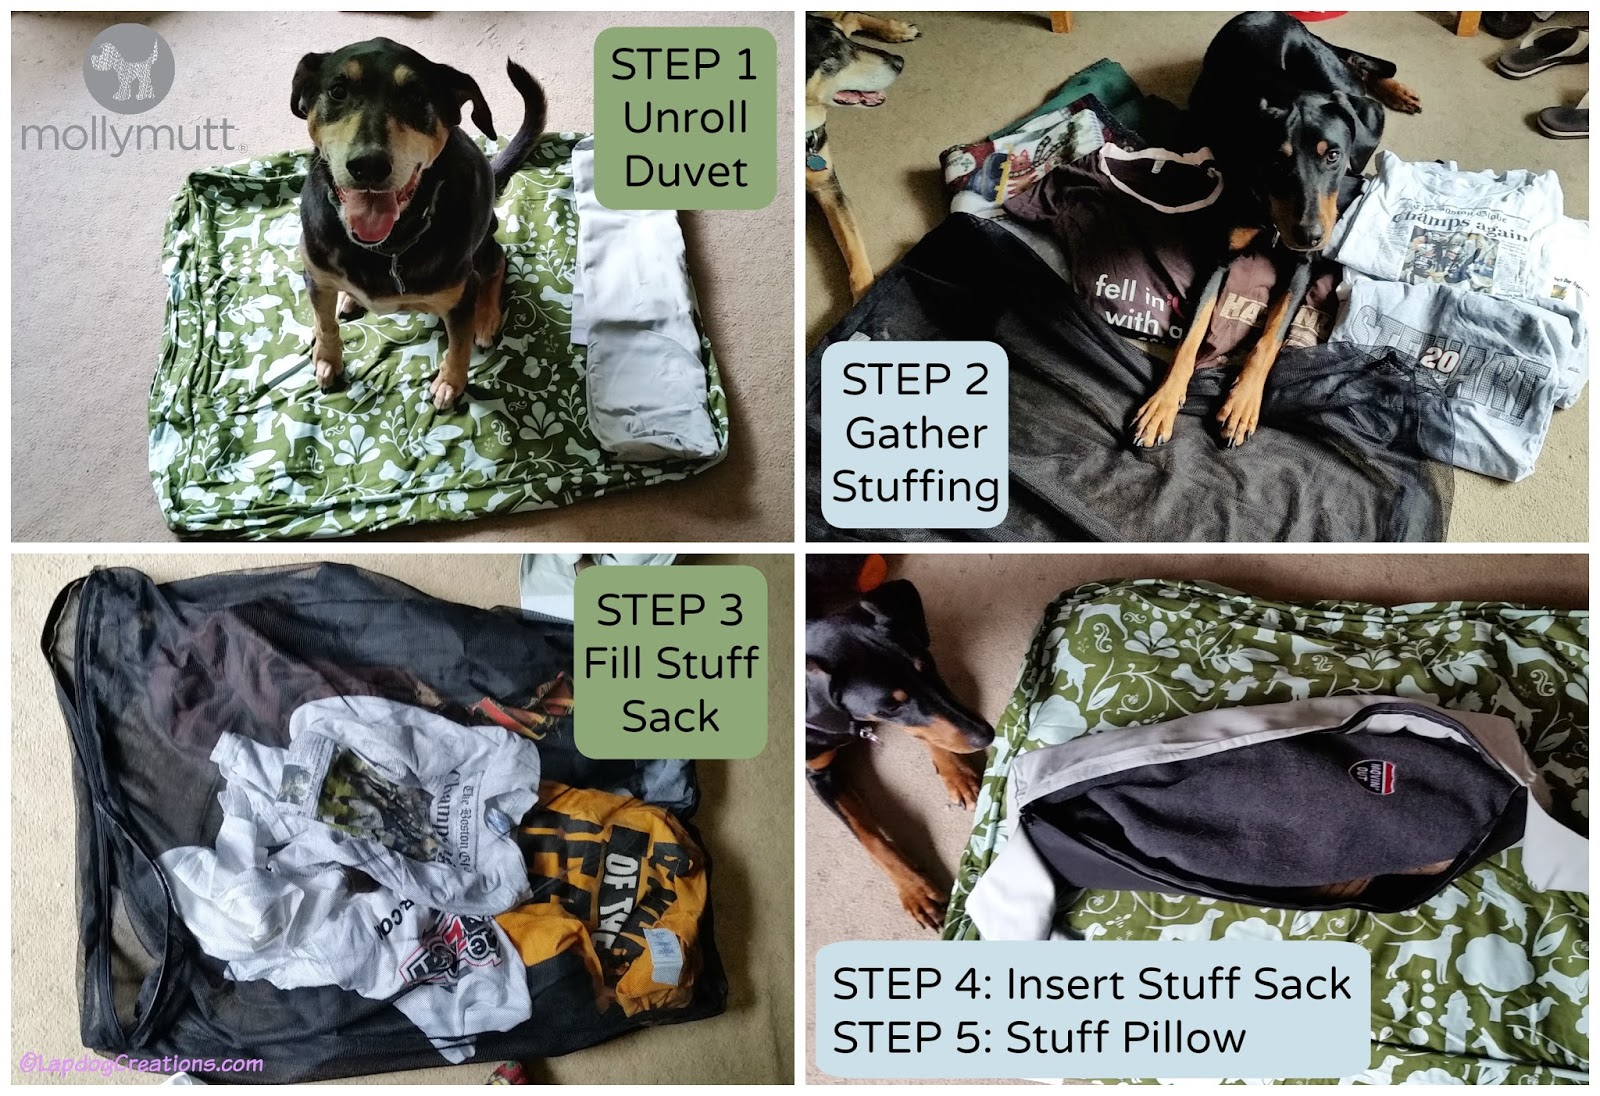 lapdog creations: #mollymutt - the dog bed loveddogs and dog